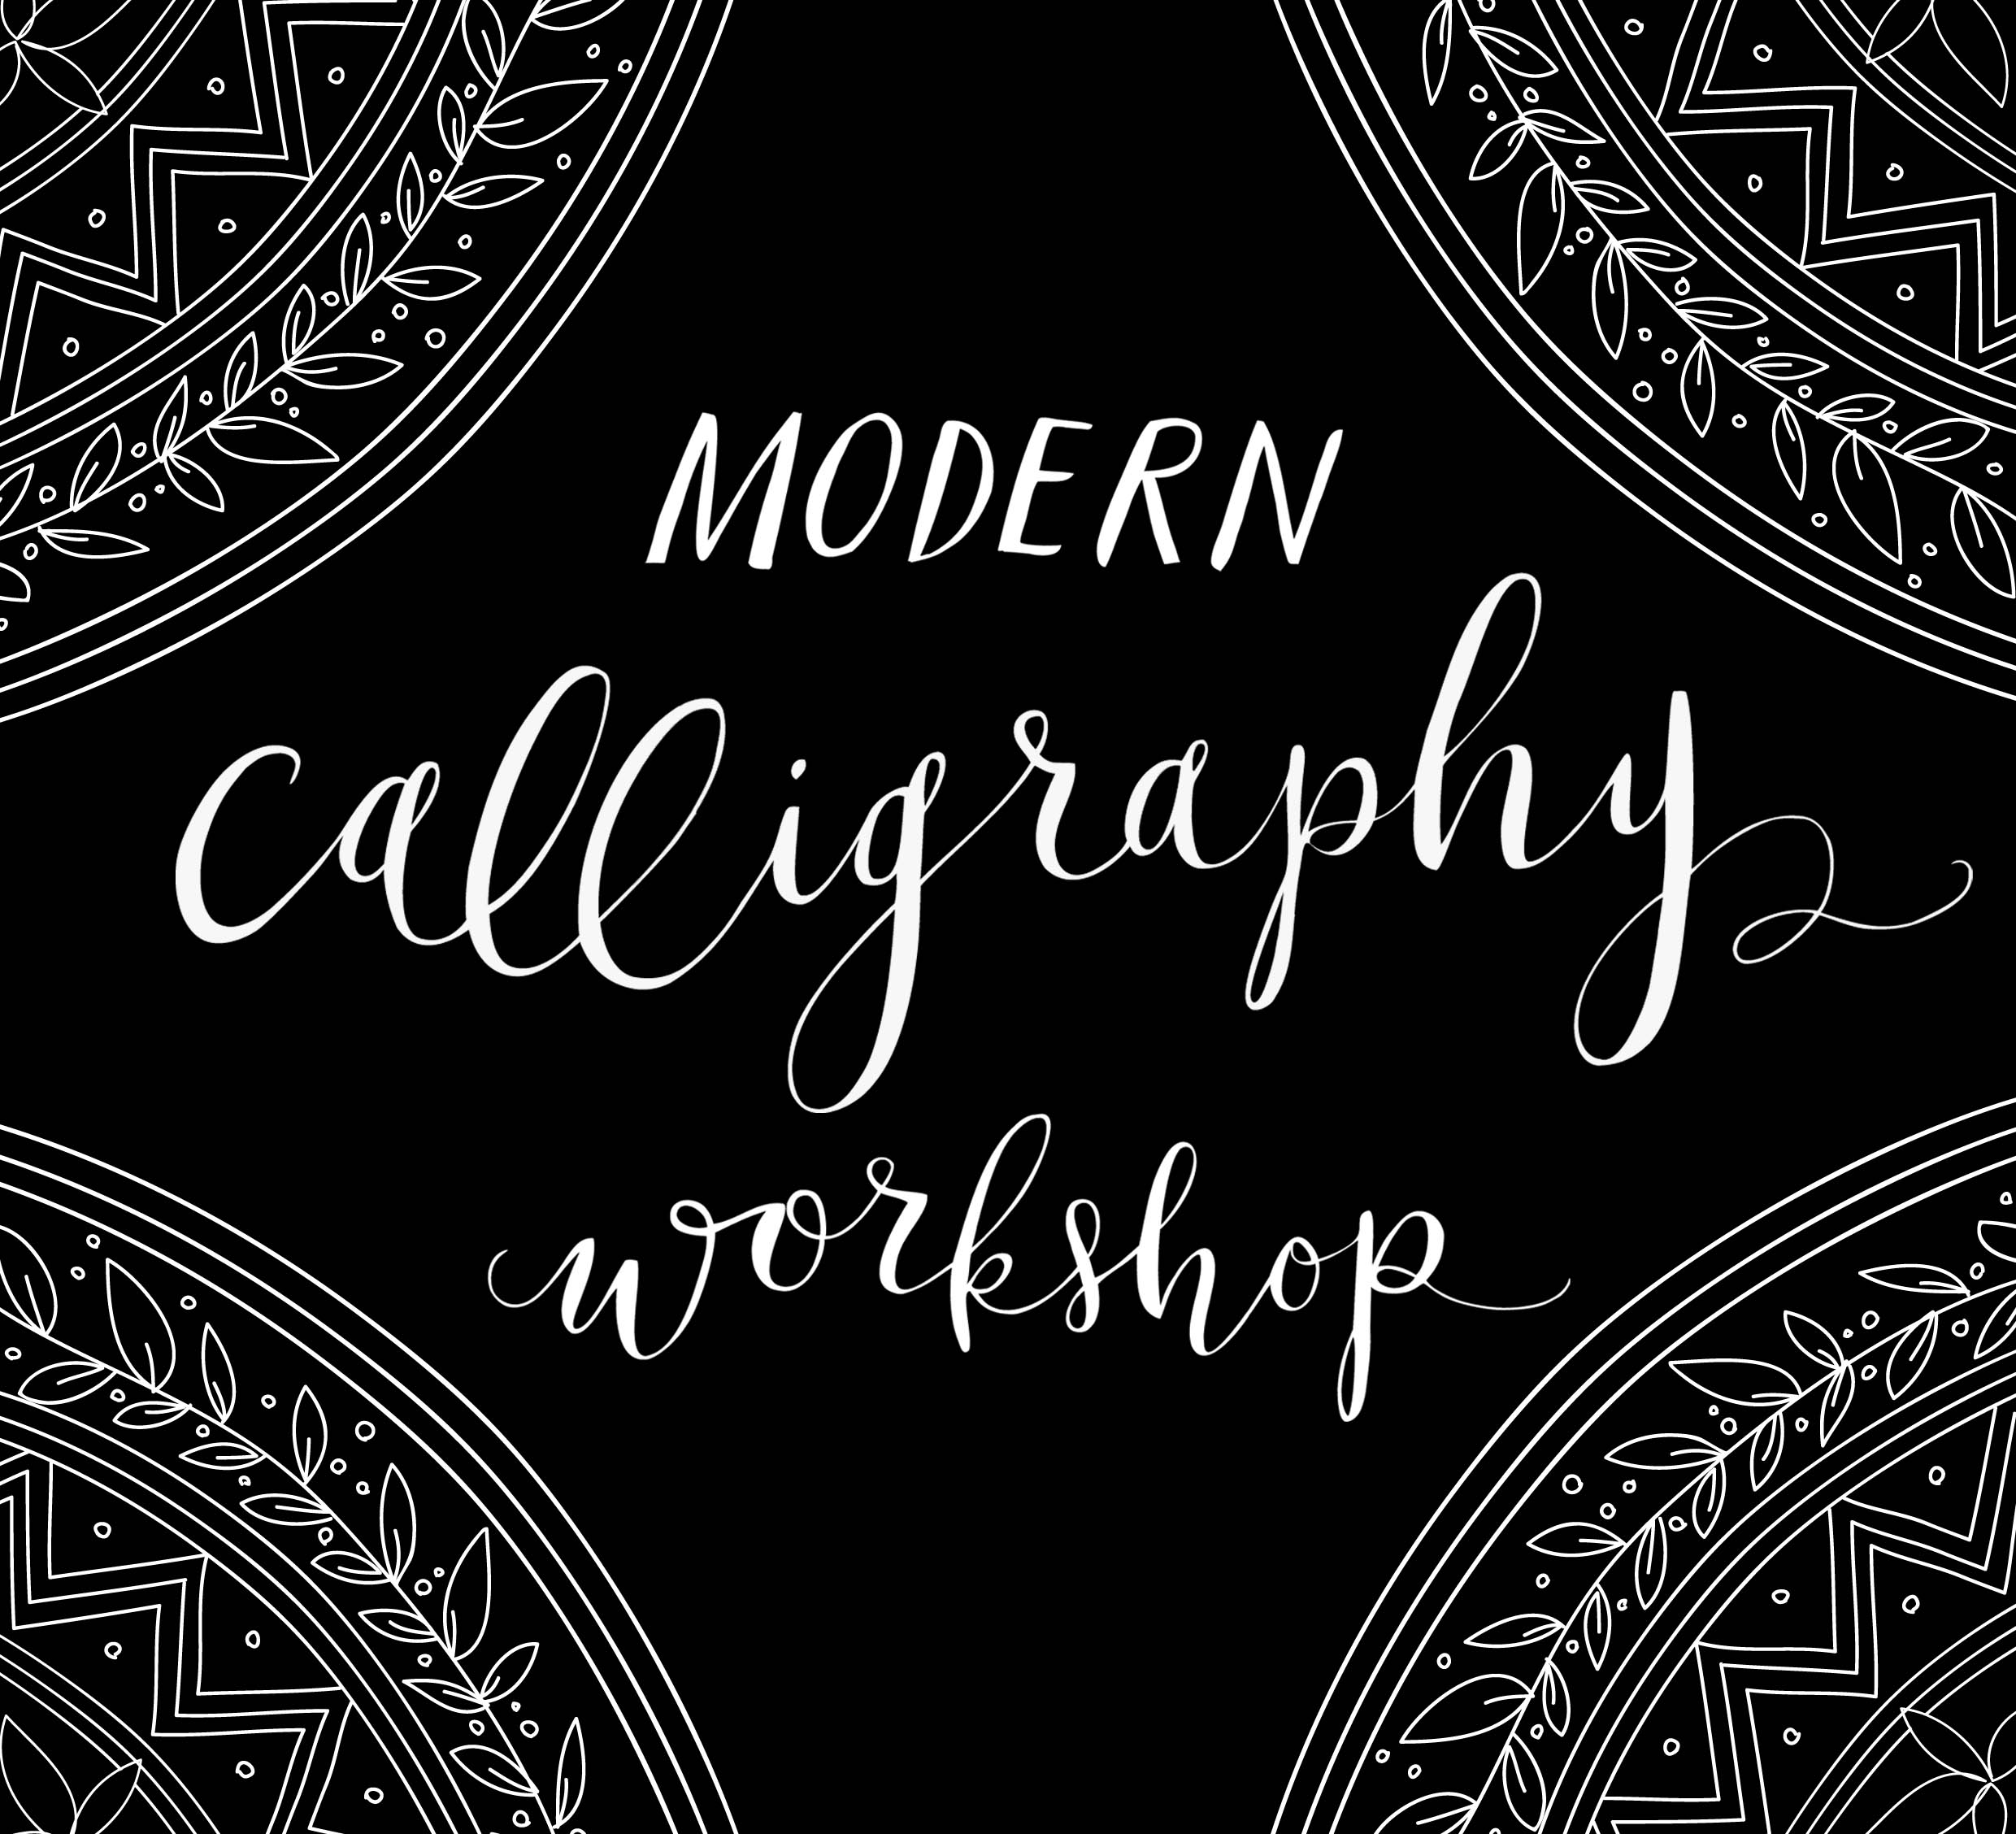 Lamplighter London Modern Calligraphy Classes